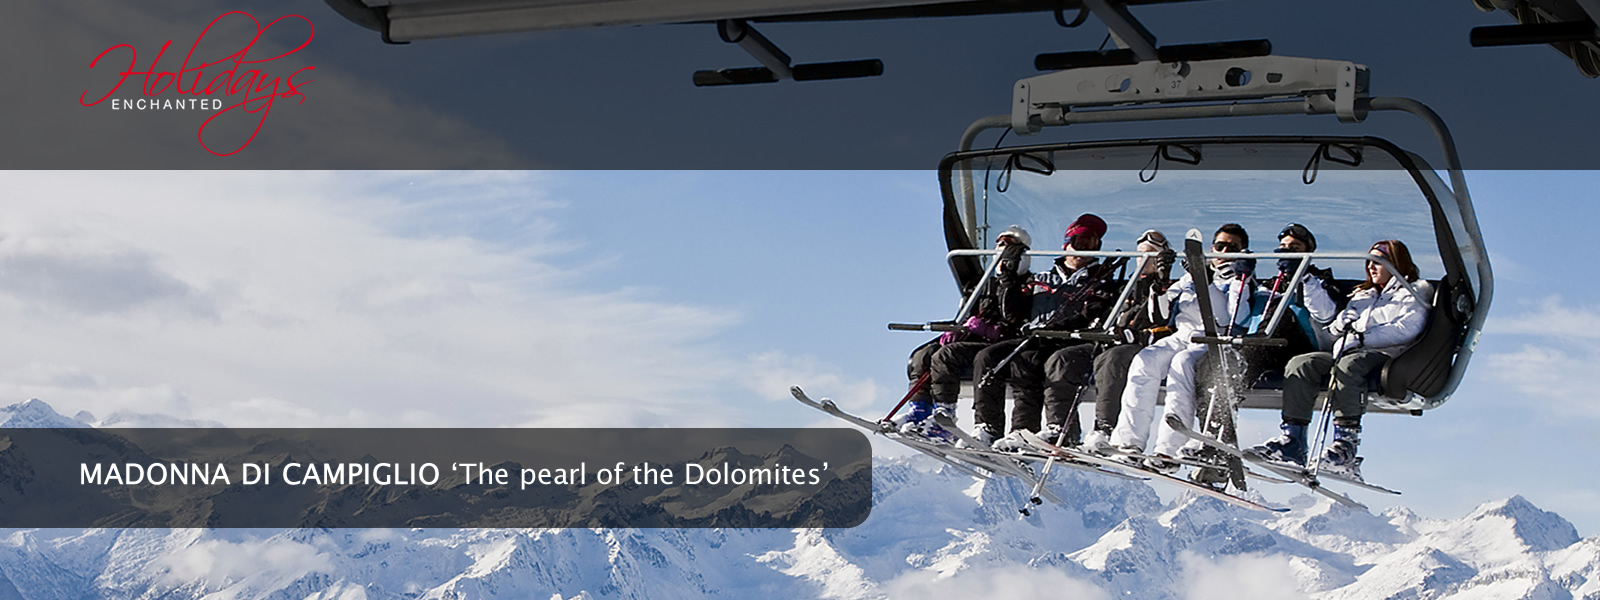 Chairlift in the Dolomites at Madonna di Campiglio